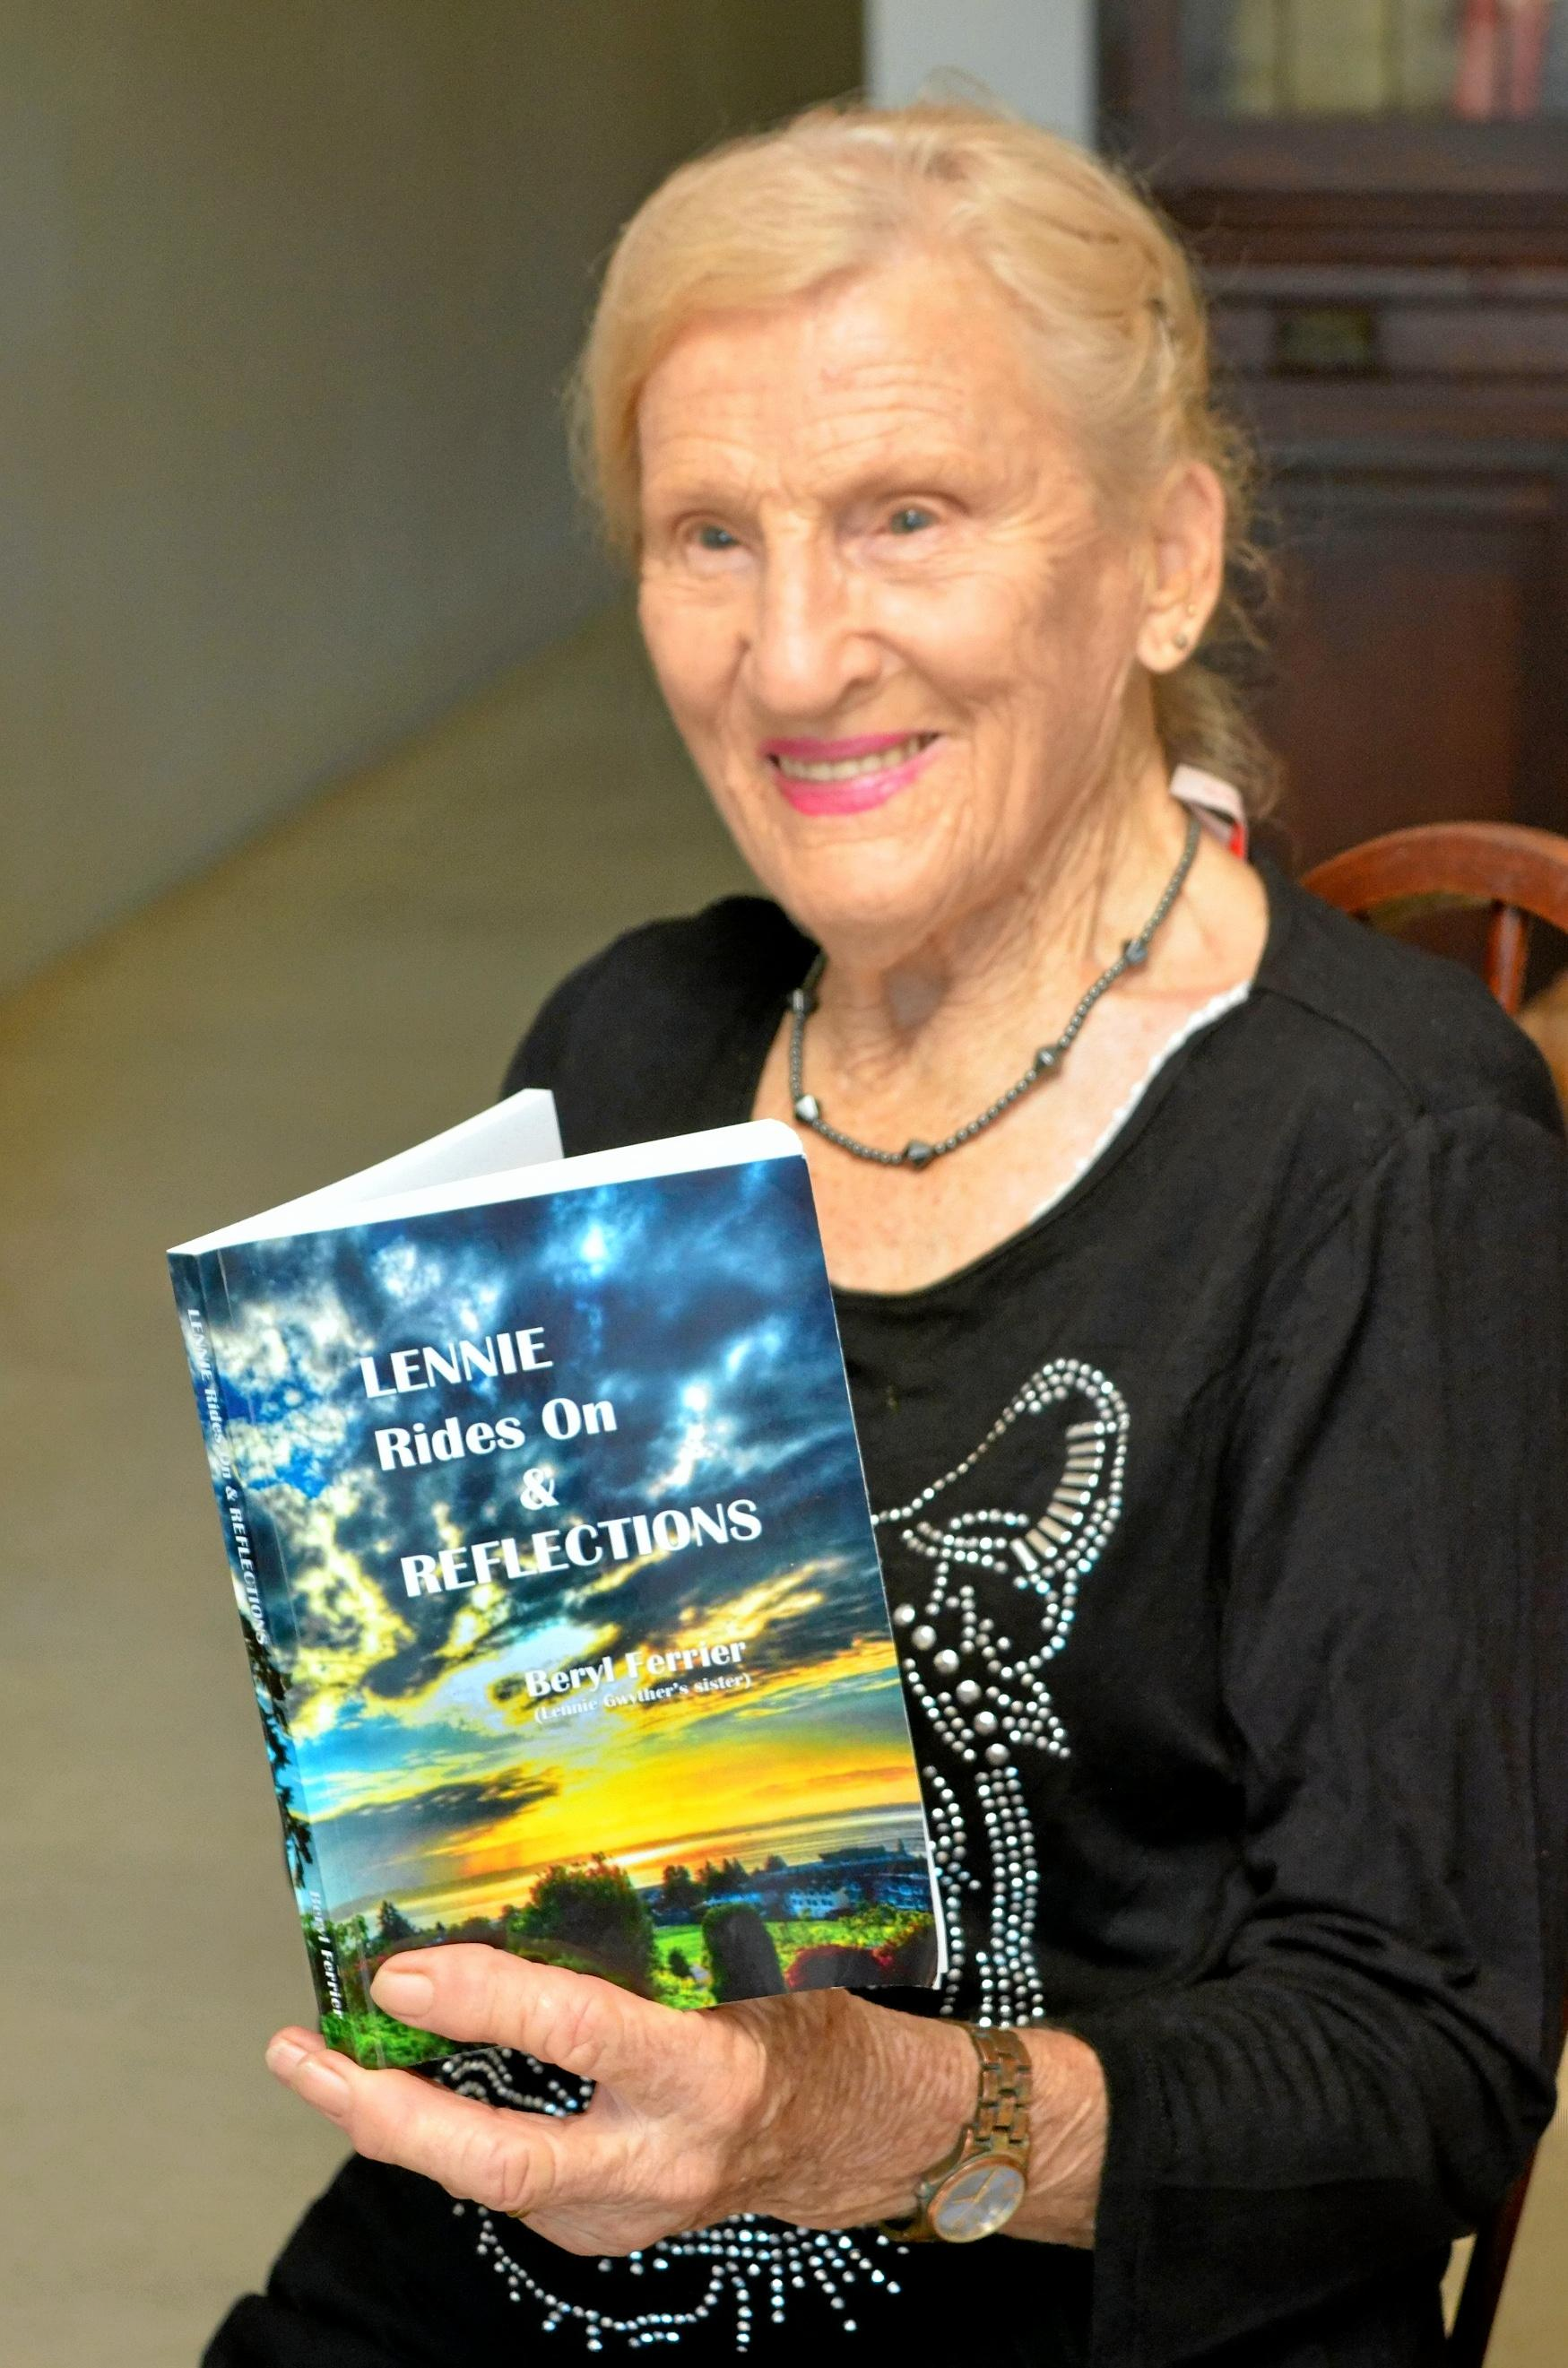 Beryl Ferrier records the life of an extraordinary family in her book, Lennie Rides On and Reflections.